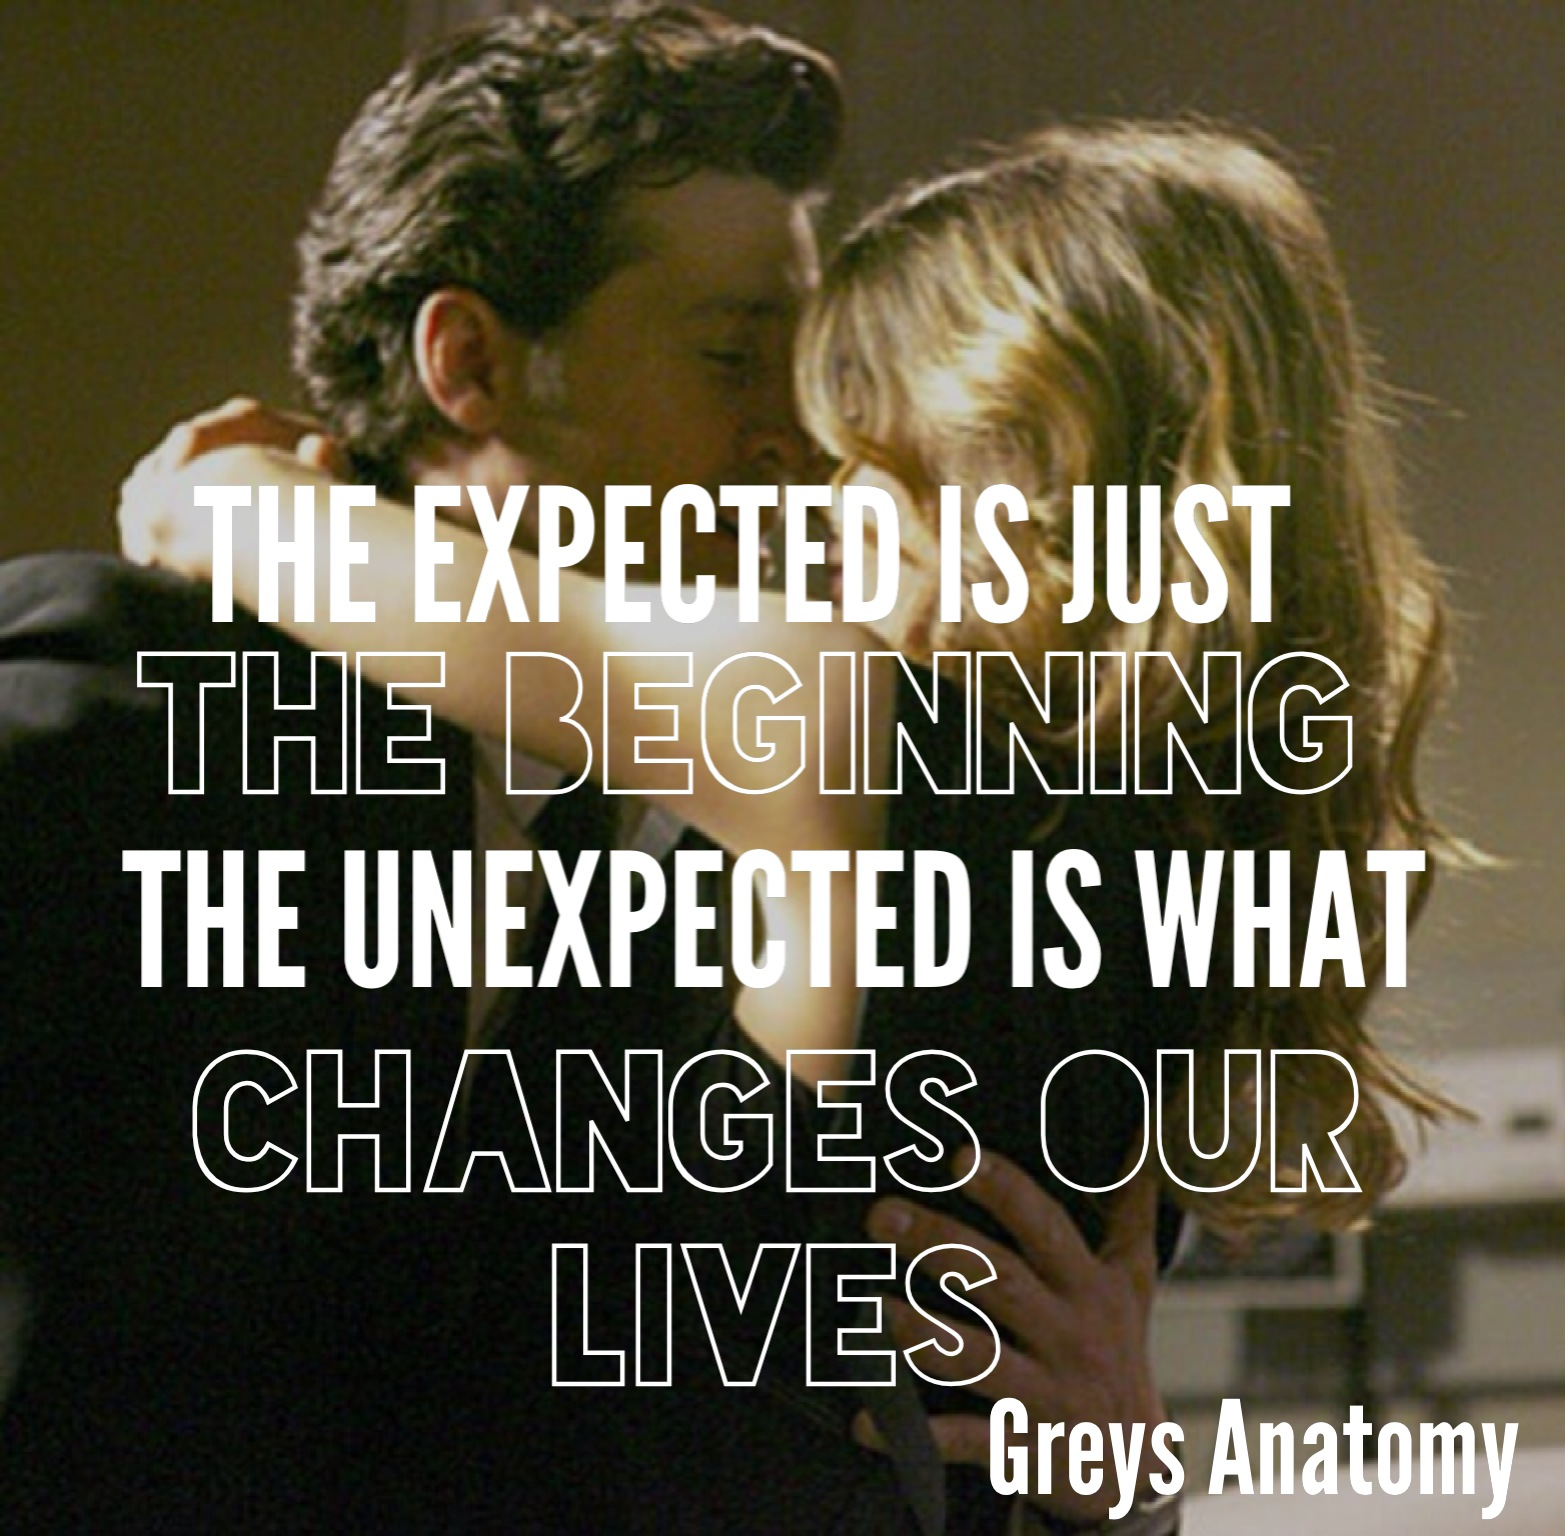 Unexpected Life Changes Quotes. QuotesGram